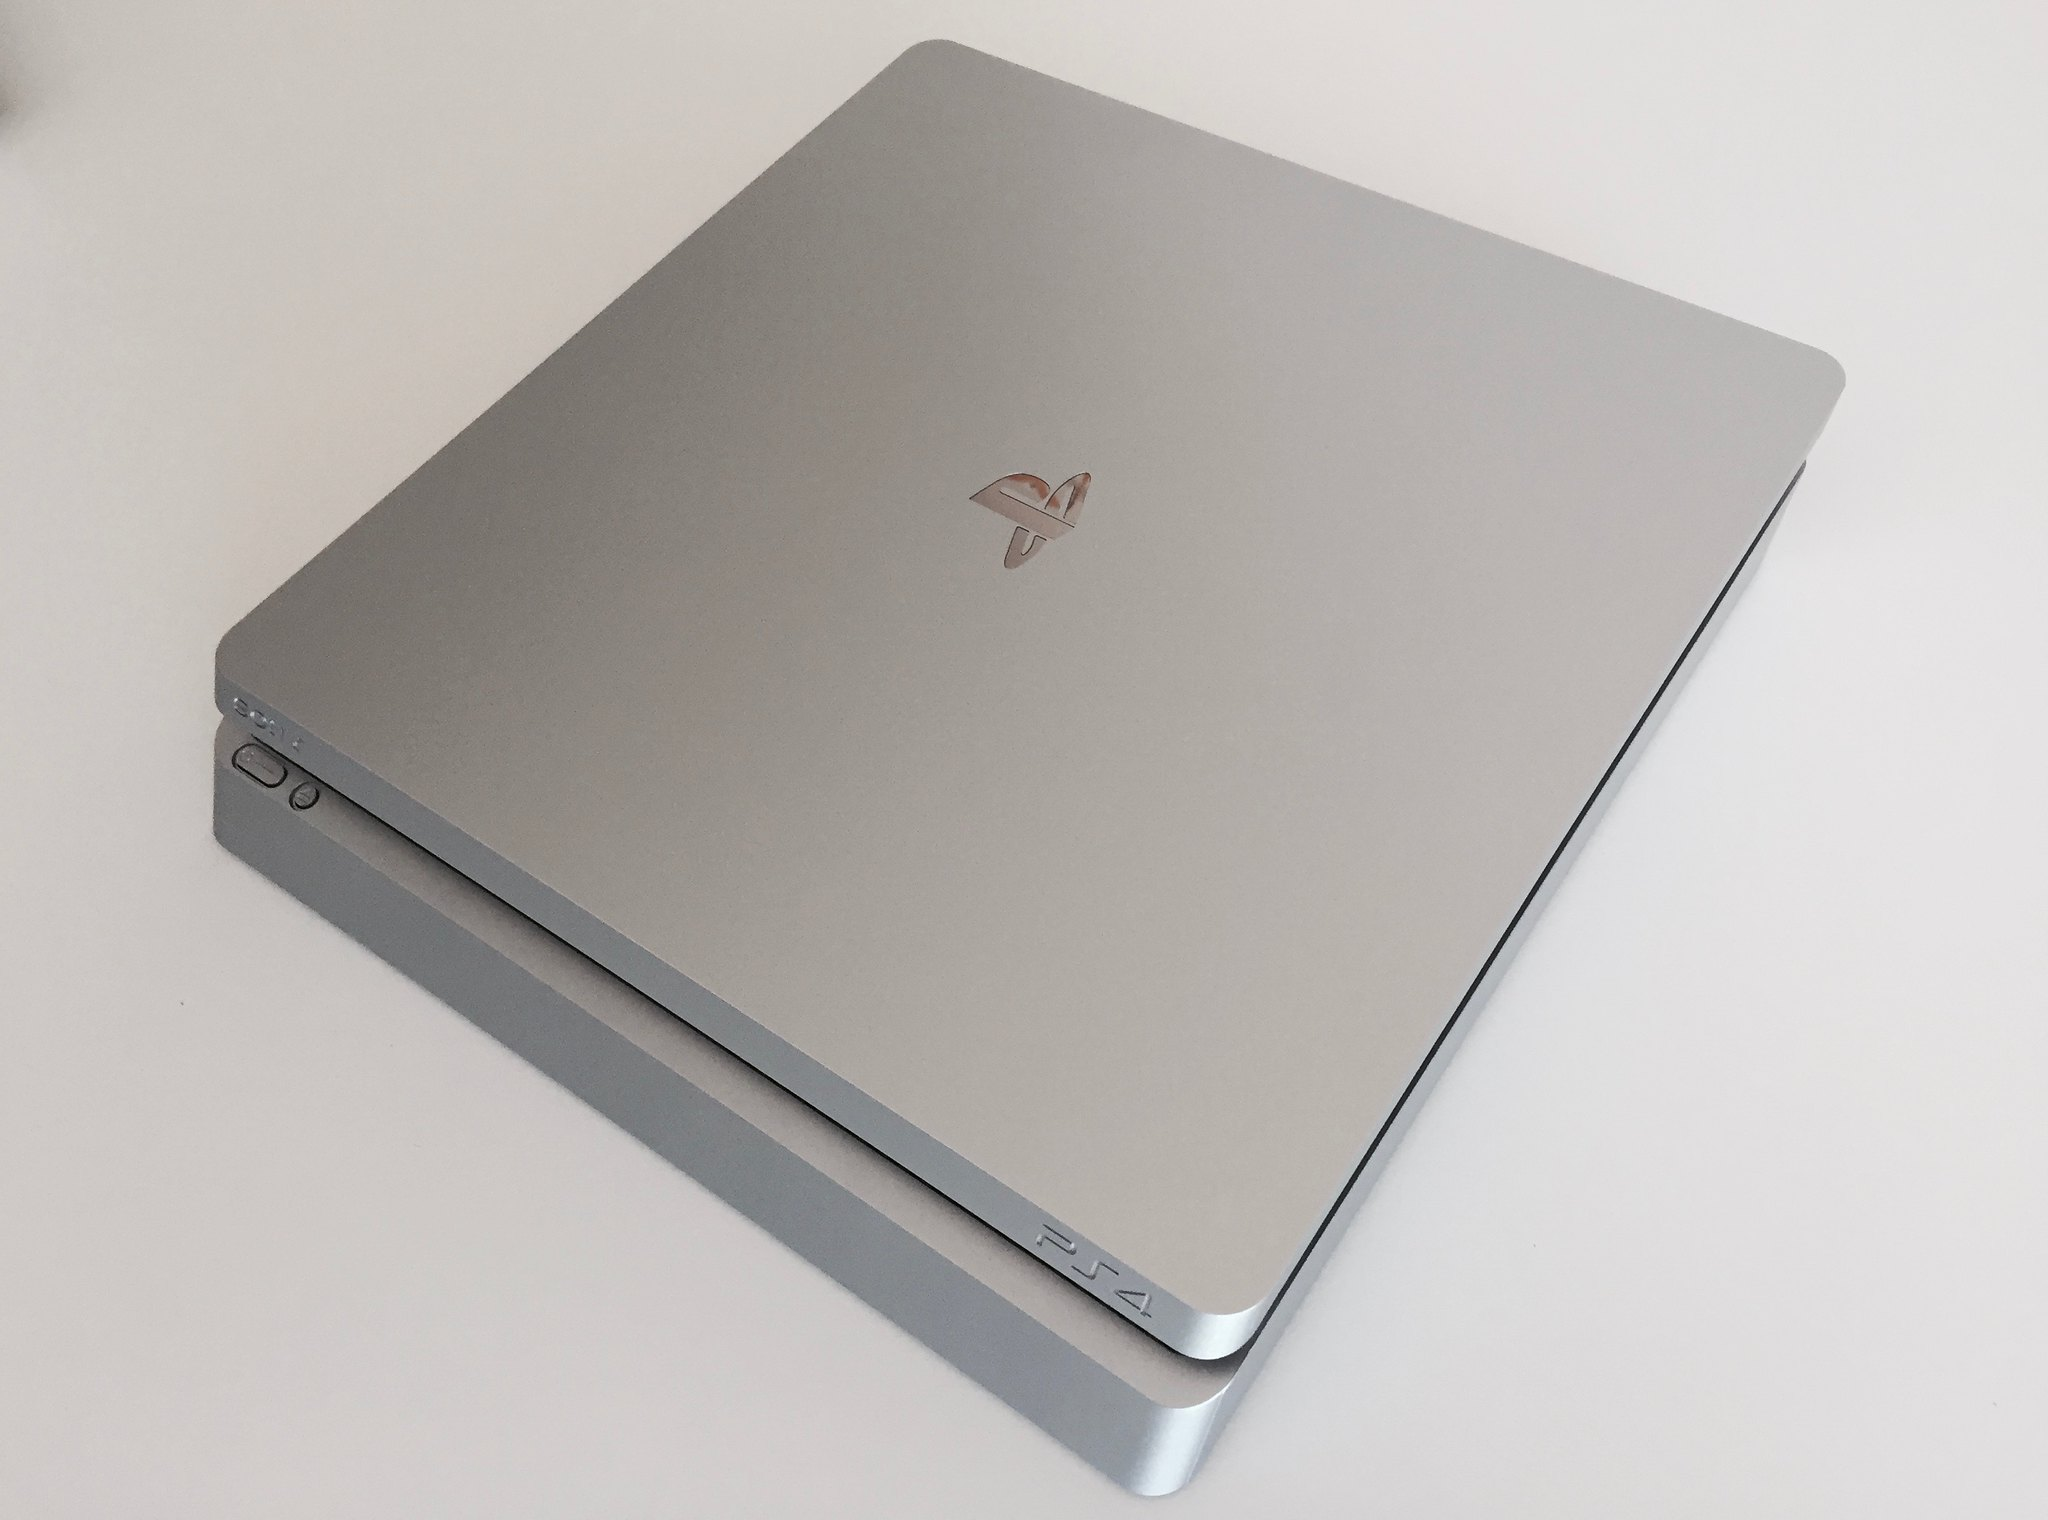 20171020 PS4 Silver 00006